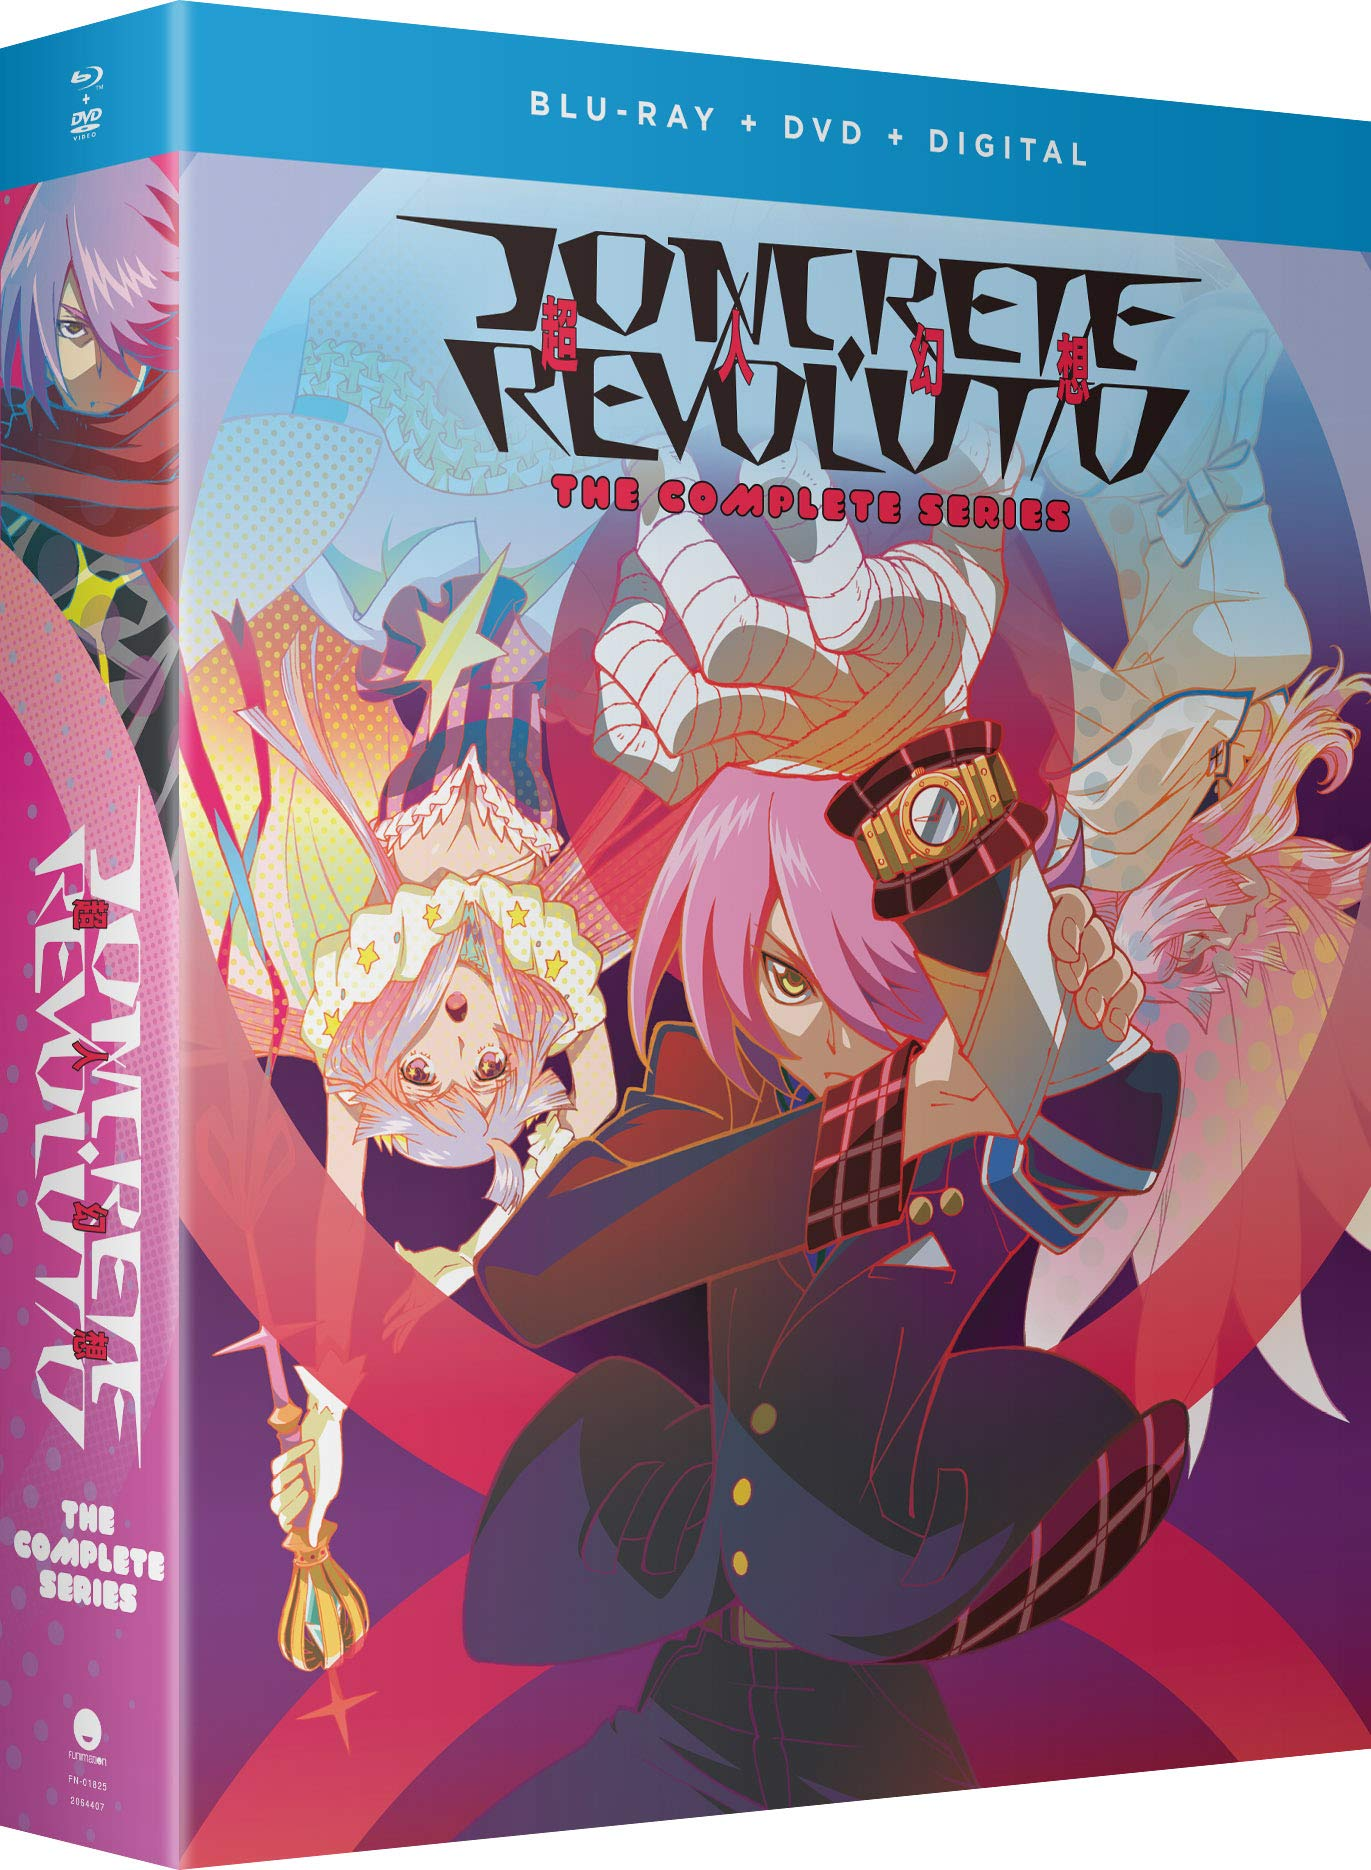 Blu-ray : Concrete Revolutio: The Complete Series (With DVD, Boxed Set, Standard Edition, Uncut, Subtitled)